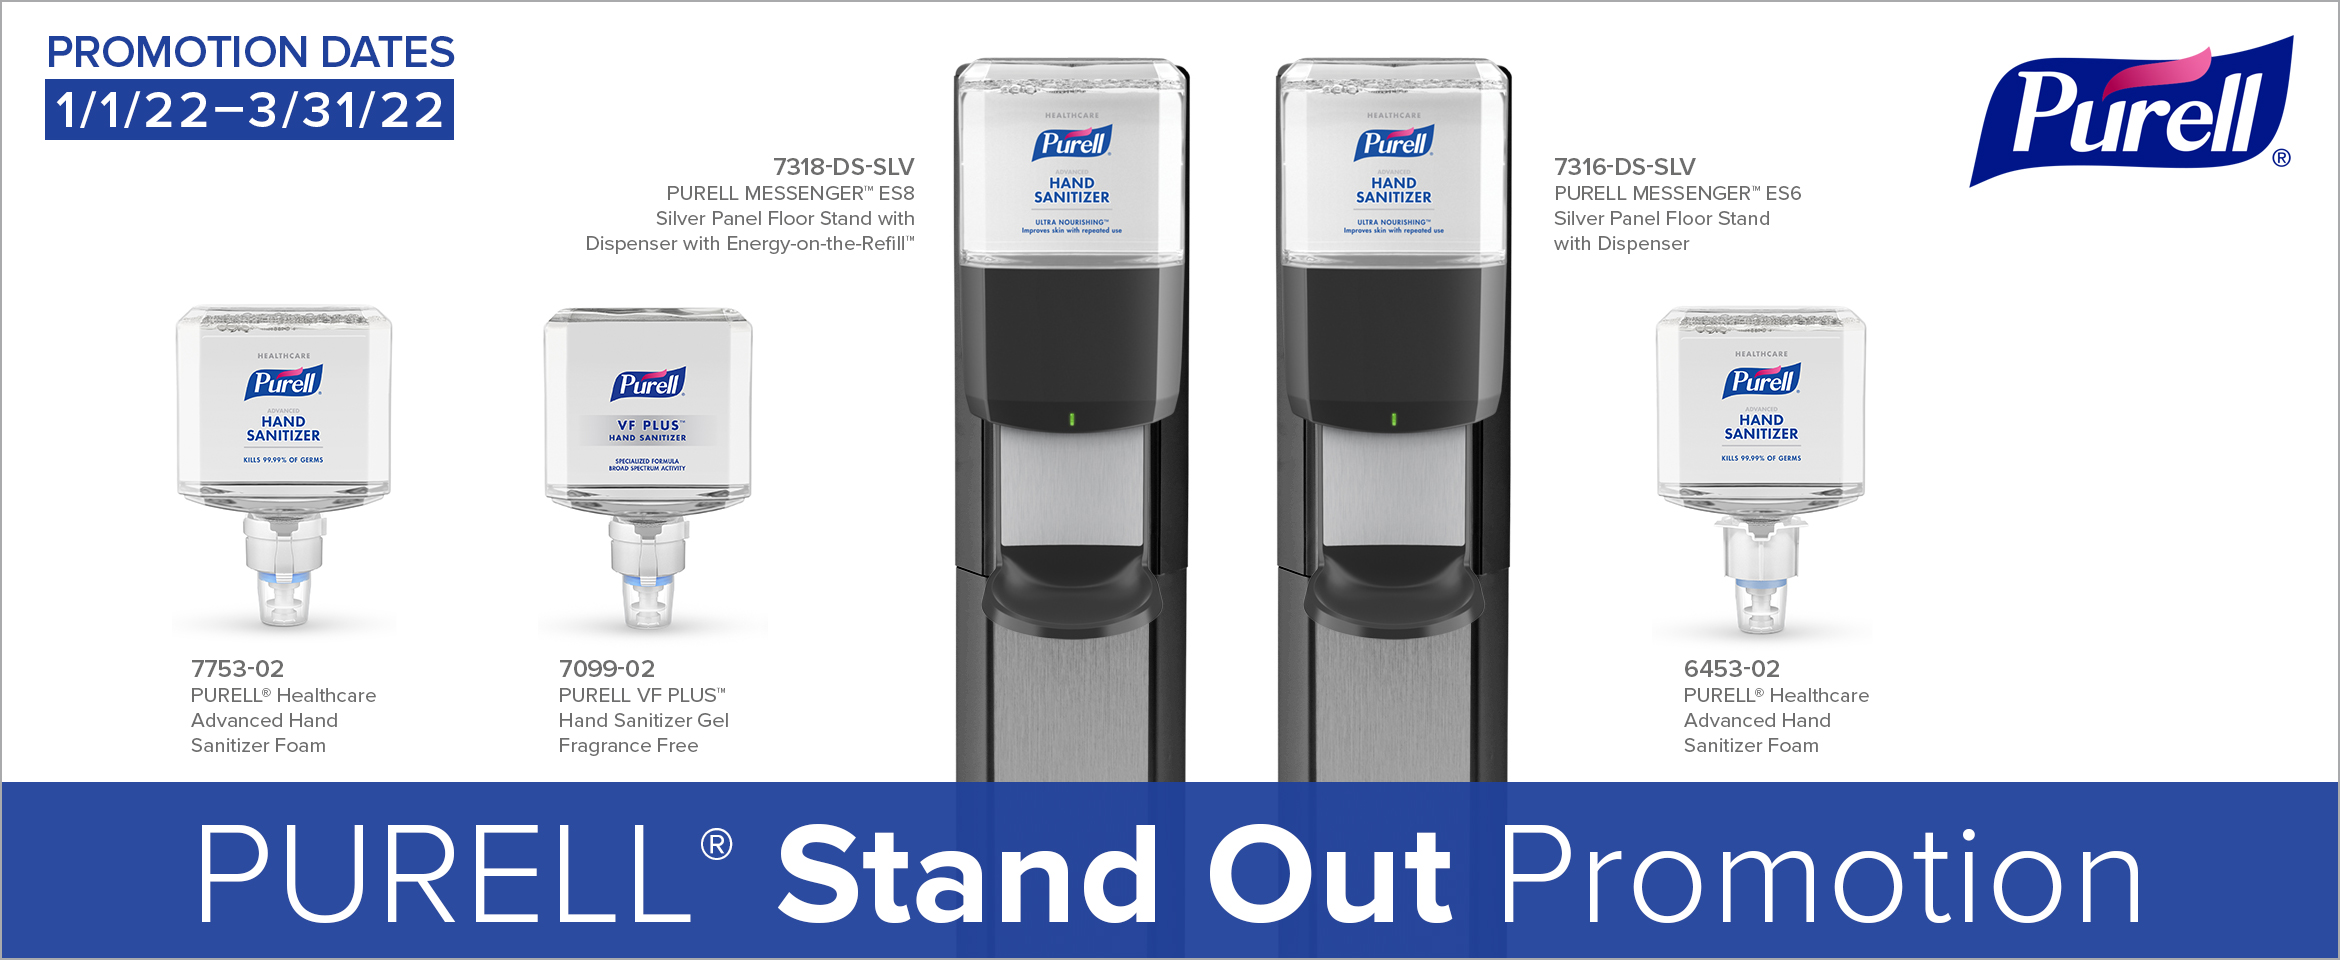 PURELL® Standout Promotion